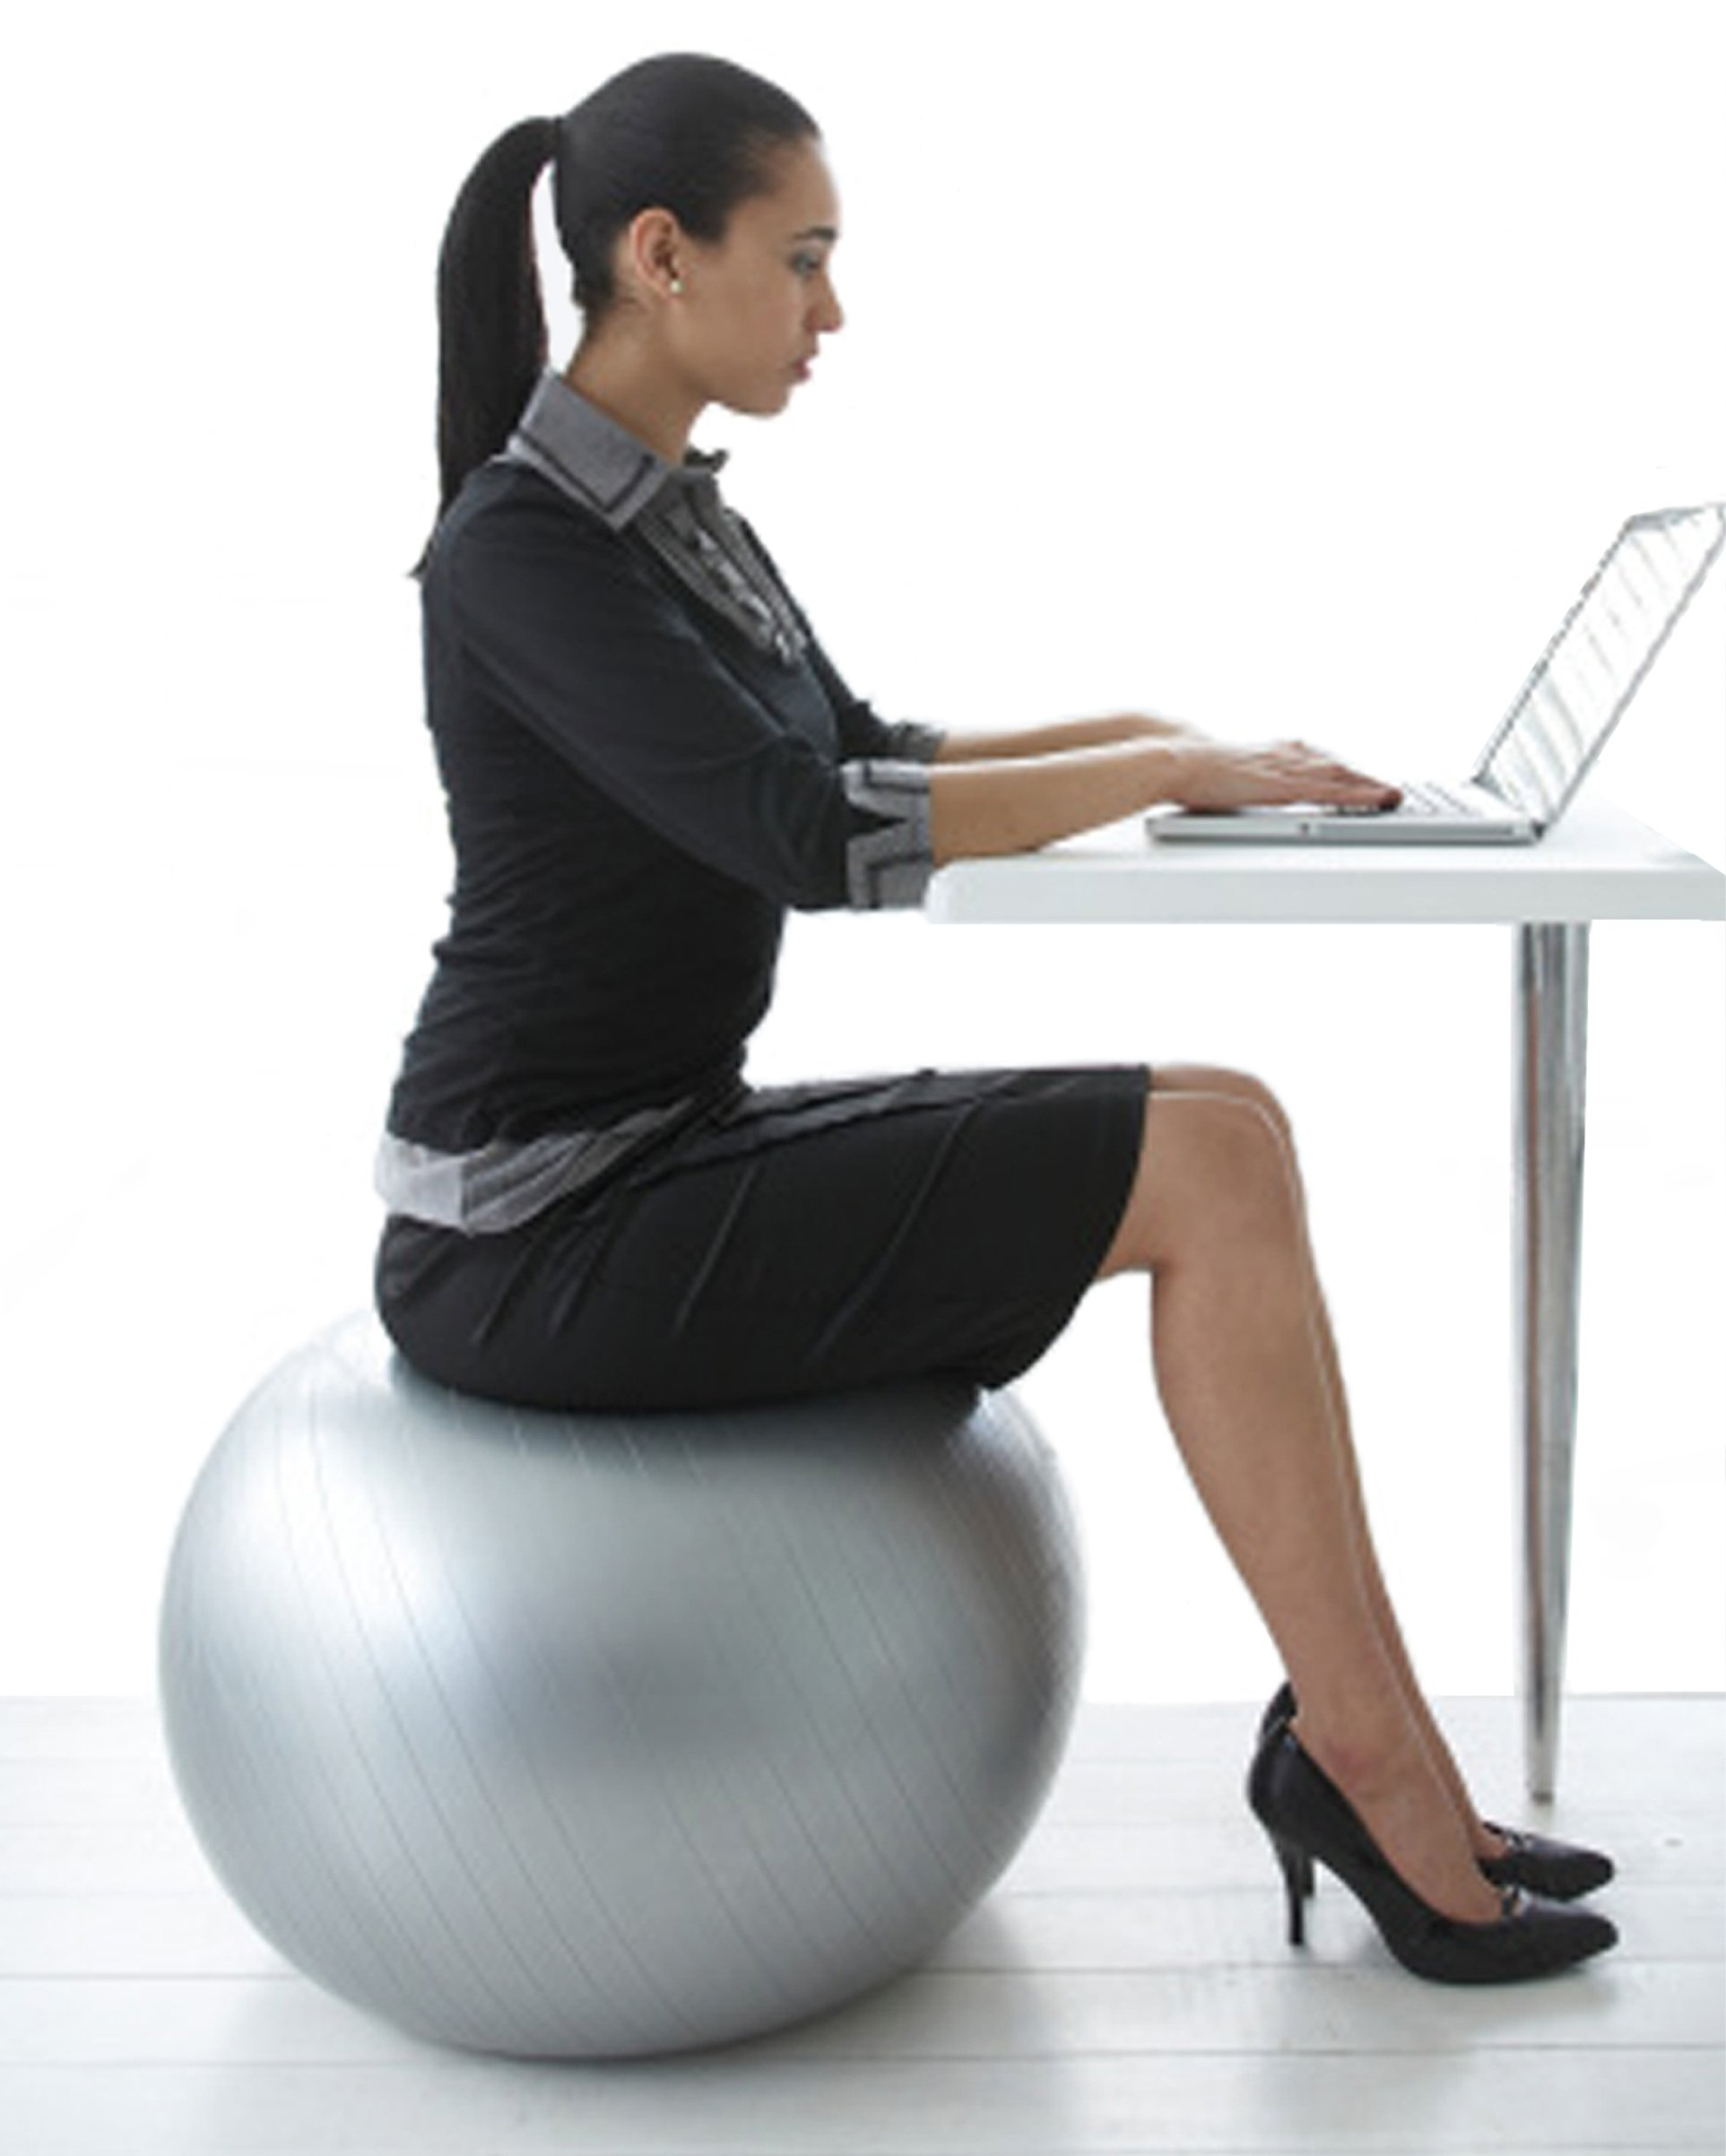 CalCore Exercise Ball Chair From Professional Strength Antiburst Ball with Hand Pump for Office, Yoga, Stability and Fitness